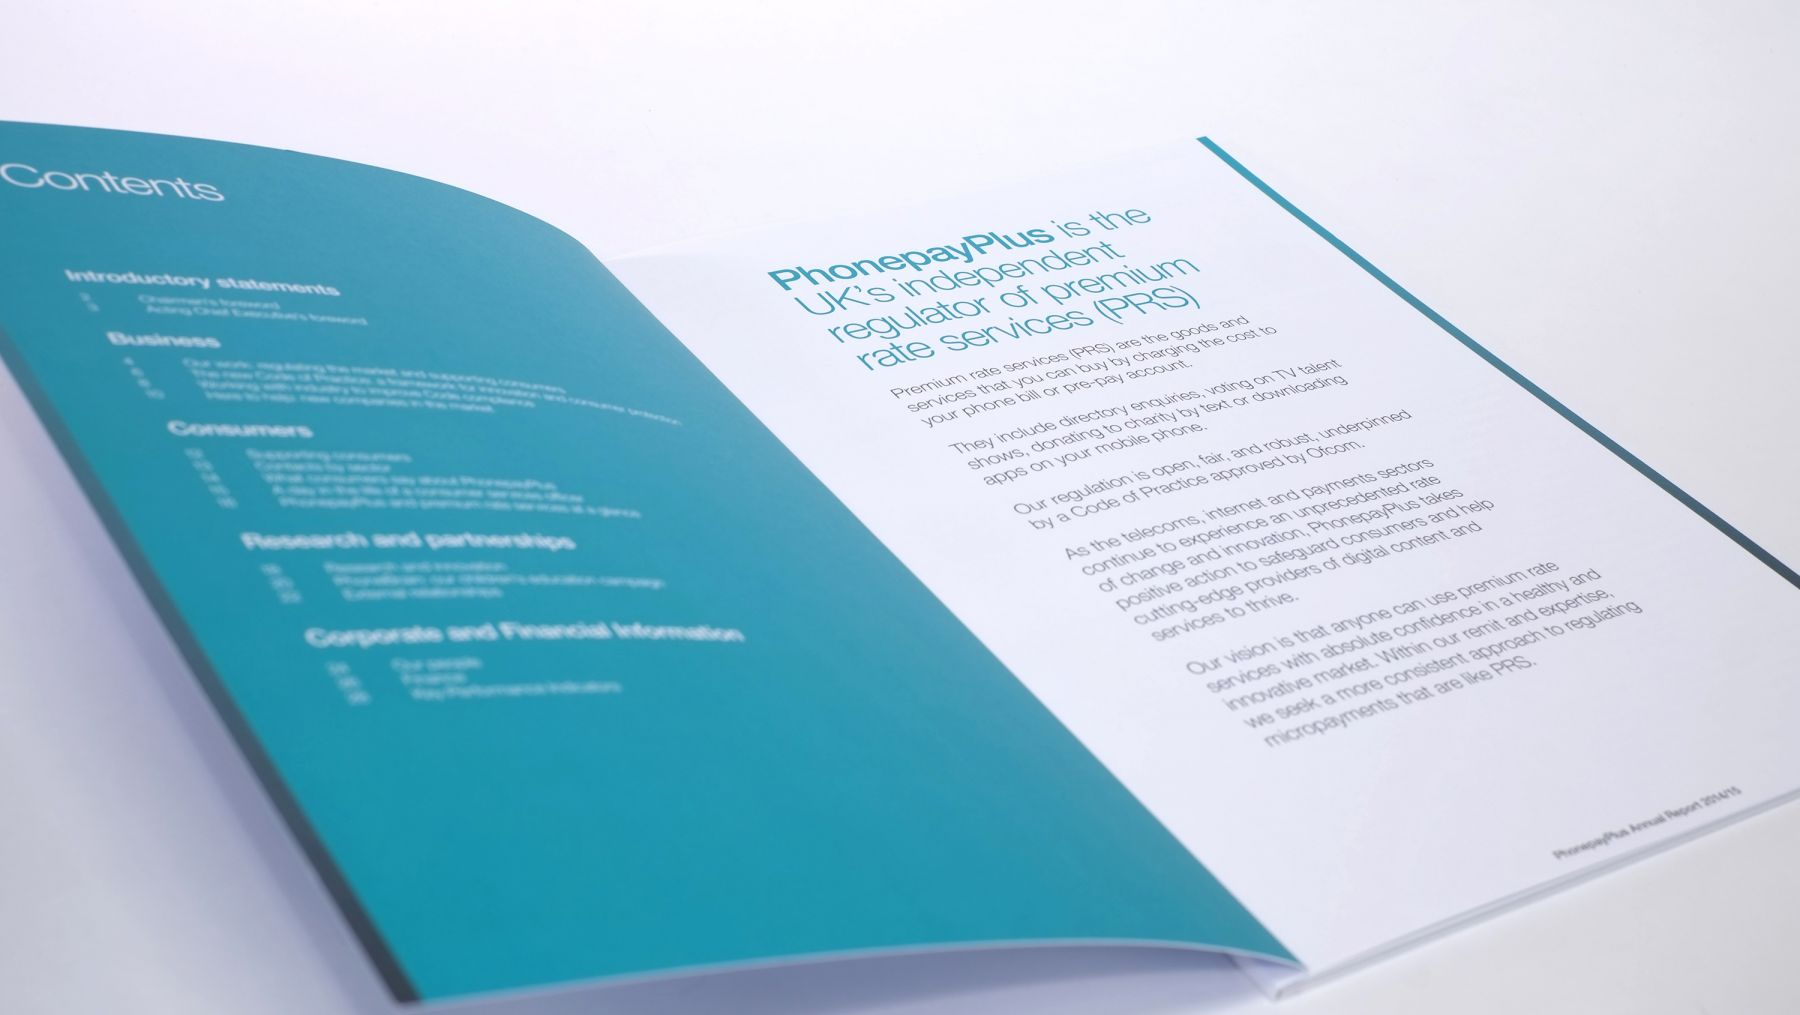 Annual Report contents page